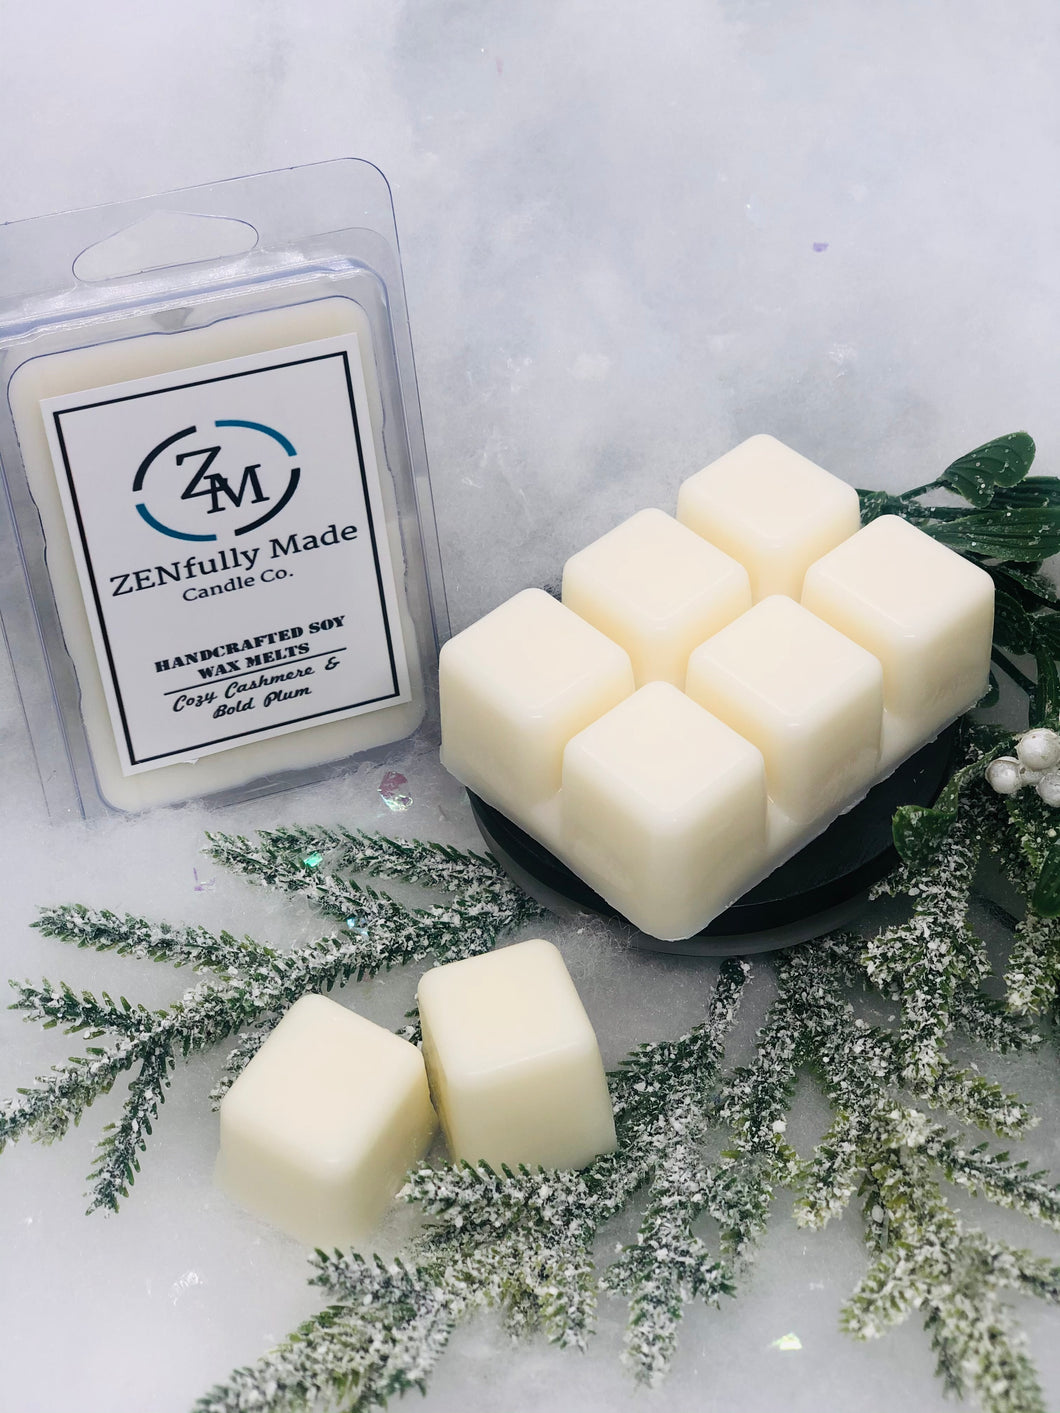 Cozy Cashmere & Bold Plum Wax Melts - ZENfully Made Candle Co.